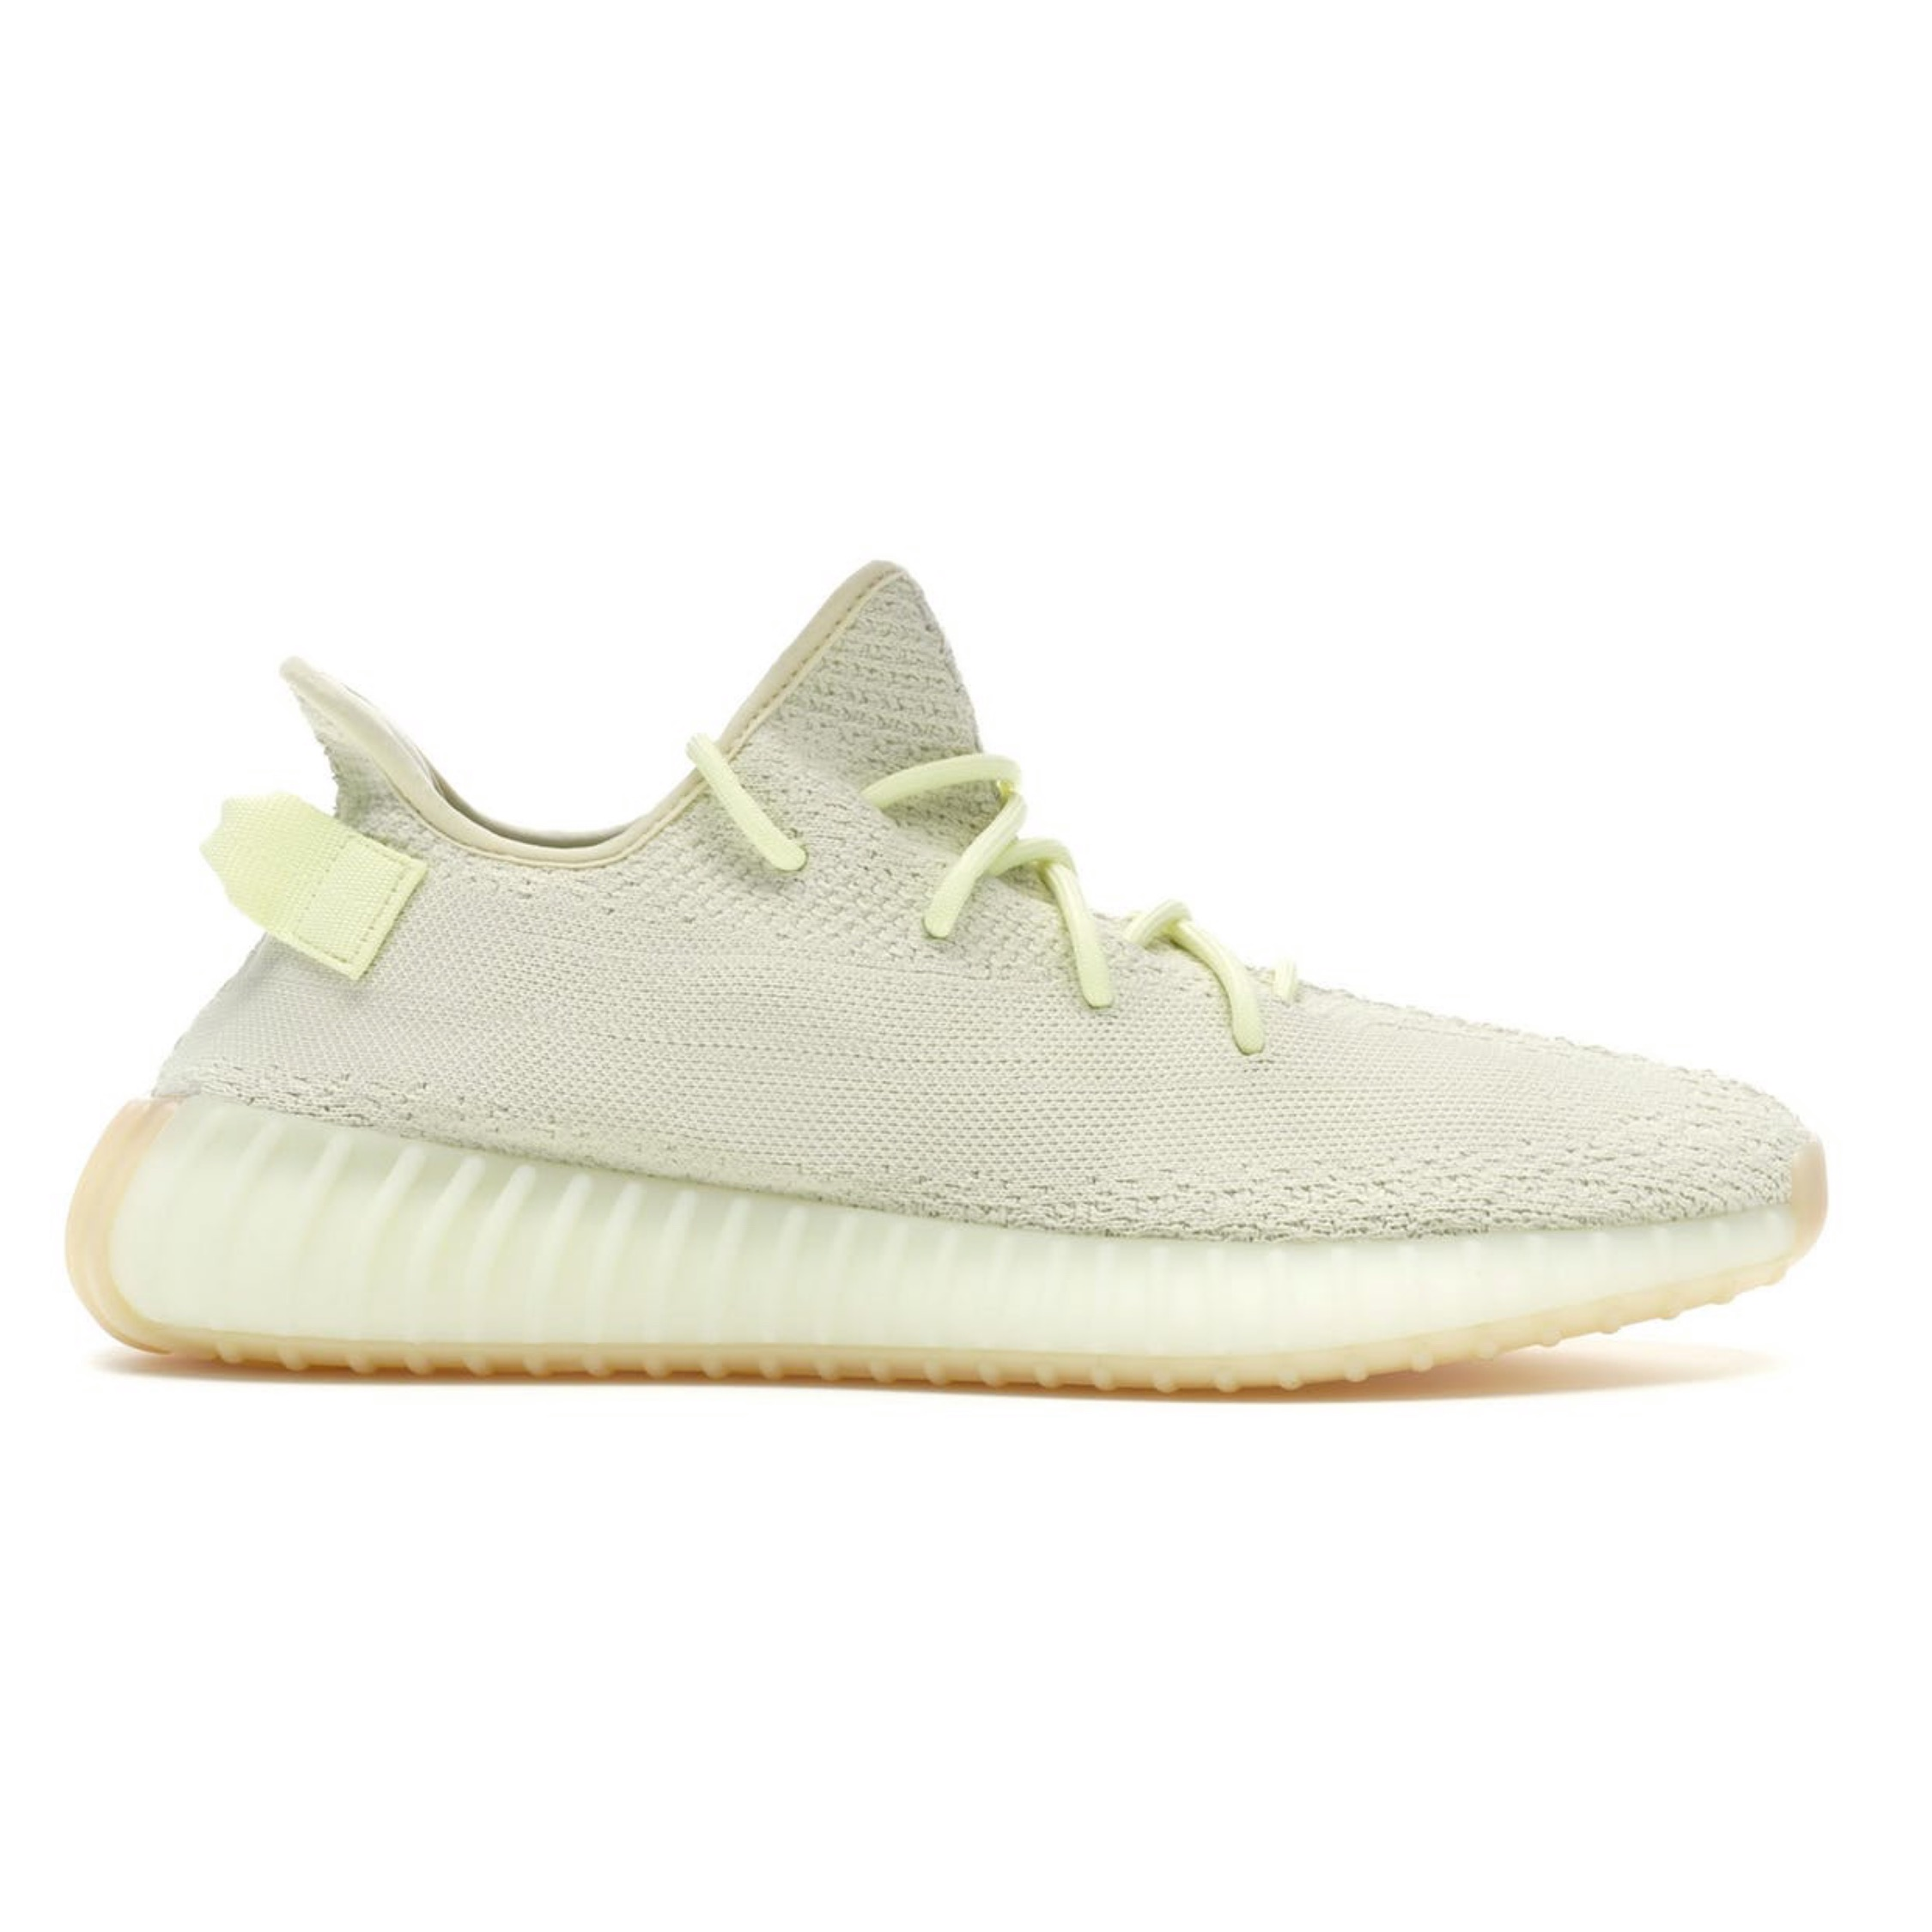 0883f4304 Adidas Yeezy Boost 350 V2 Butter Uk 8 Us 8.5